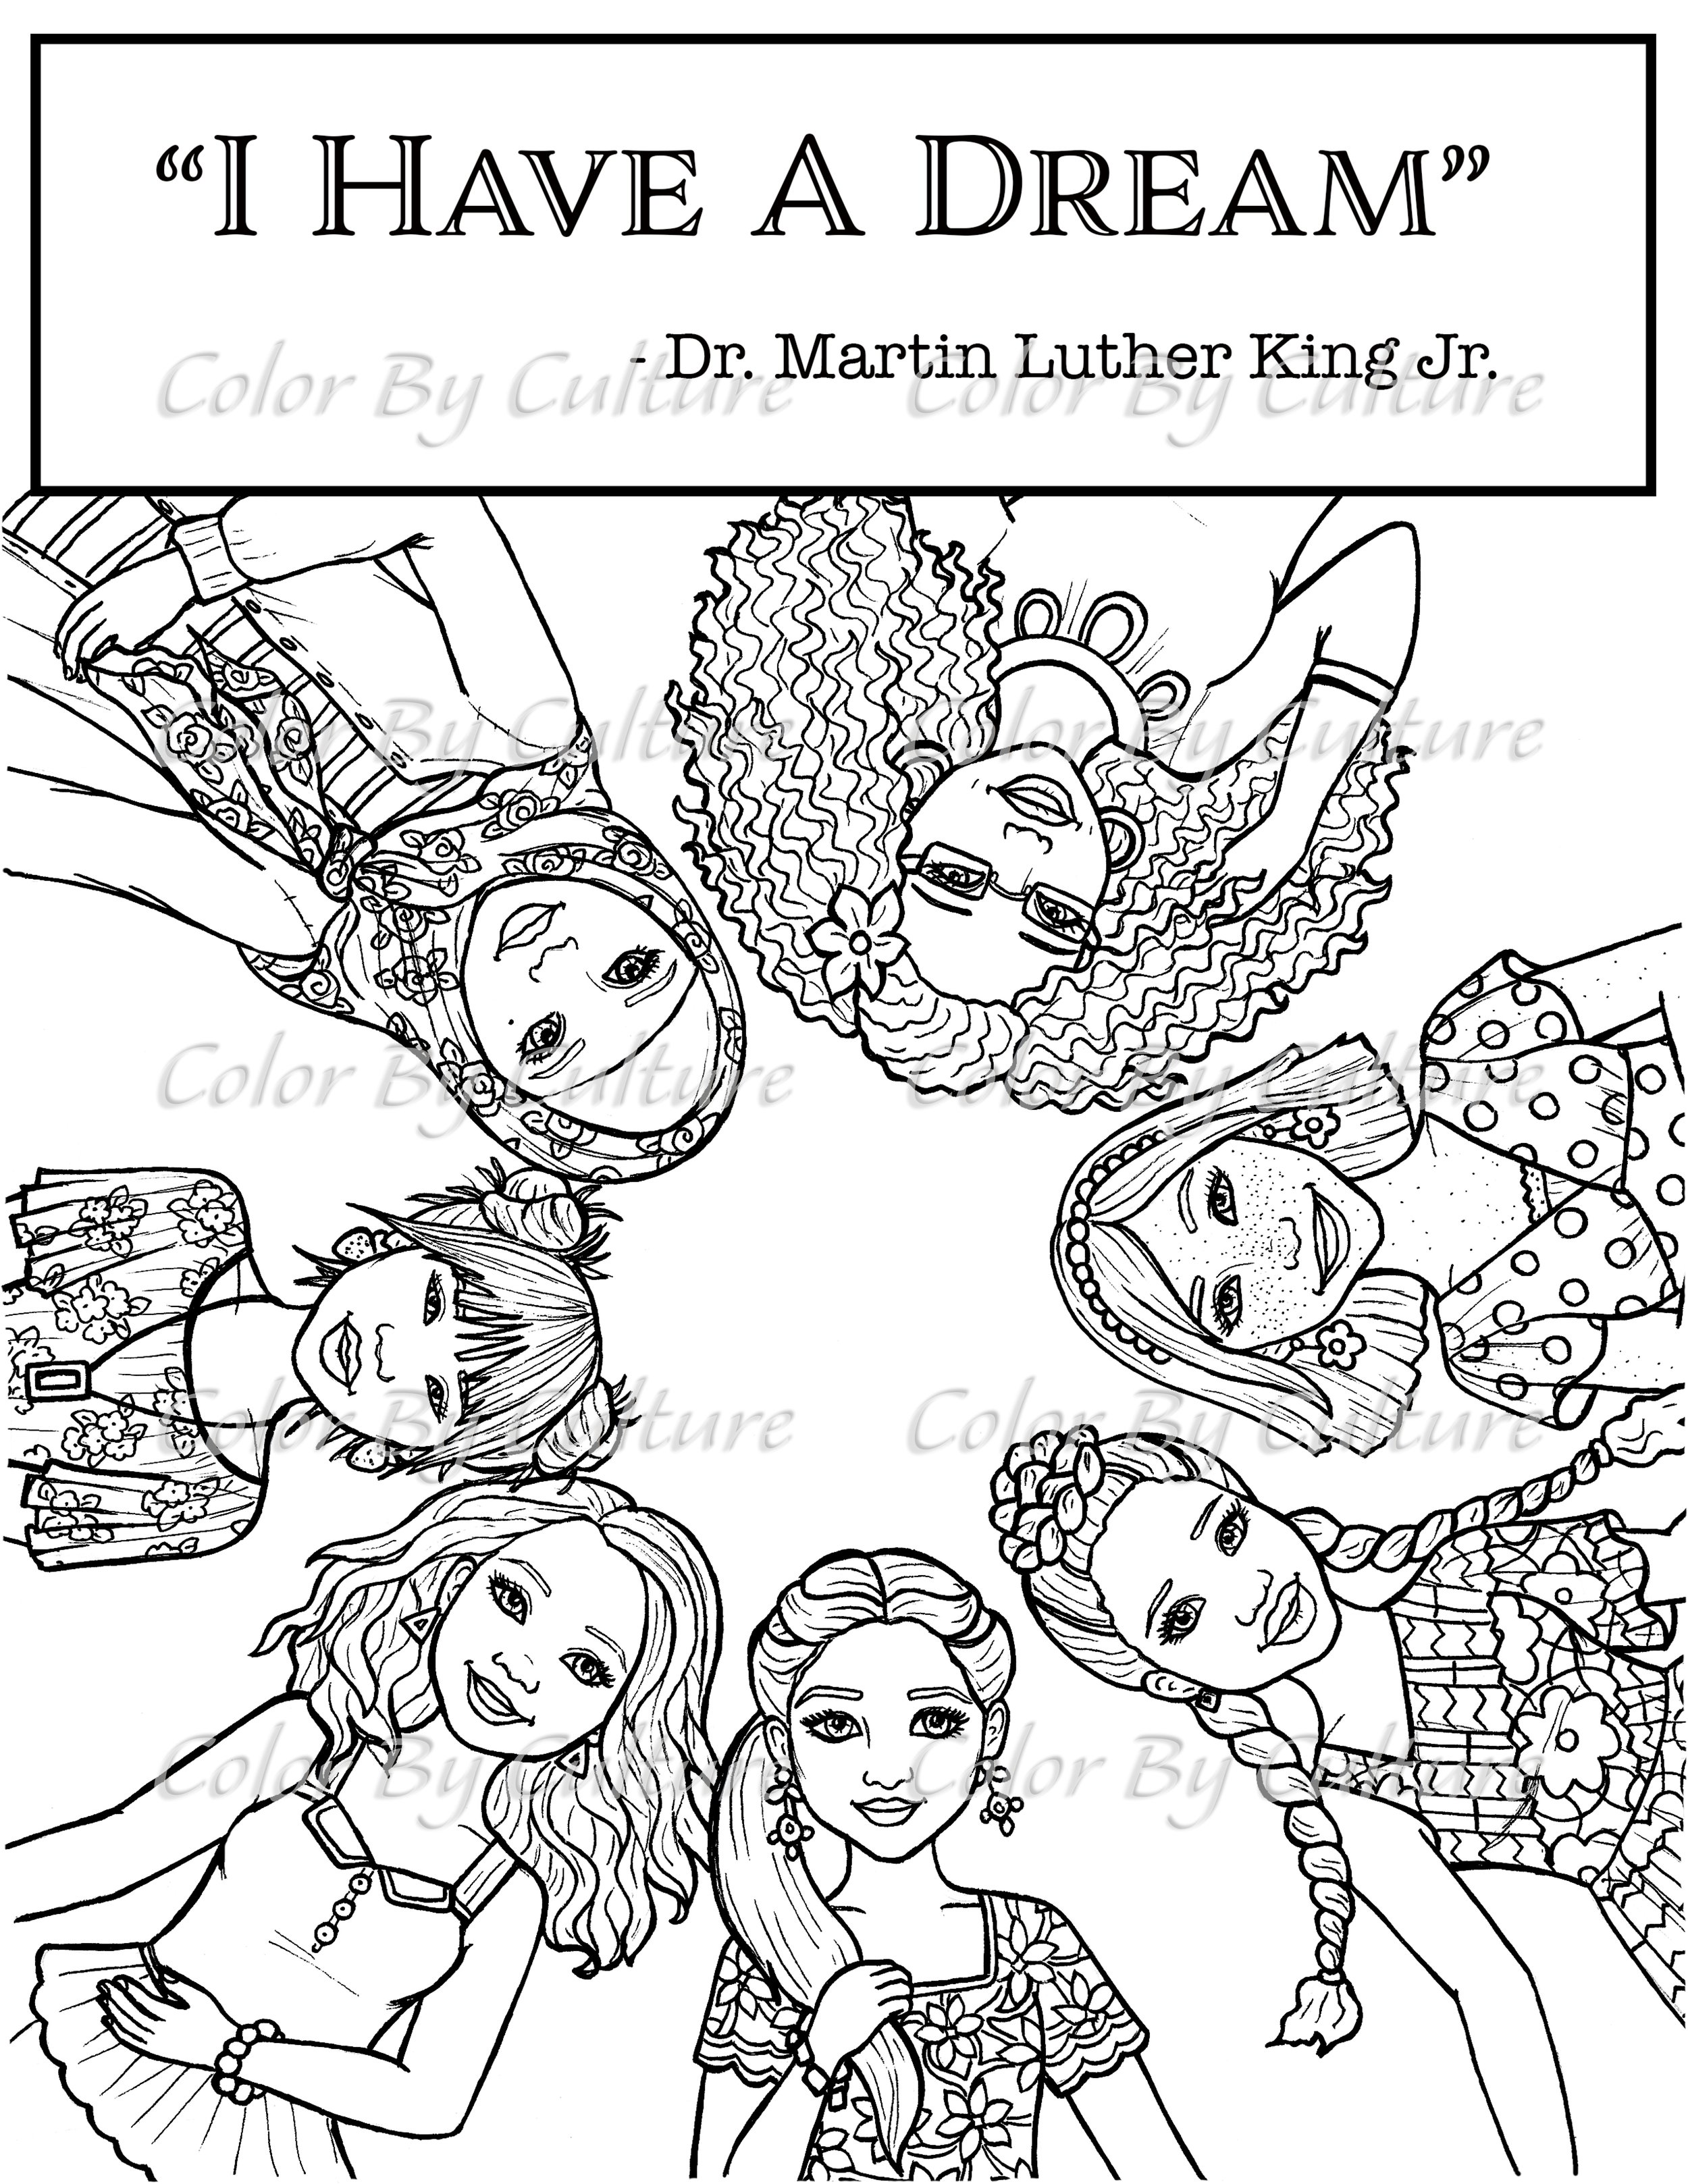 Chapter 7 Buz has a Dream Coloring Pages – Memoirs of Buz the Bear   1294x1000